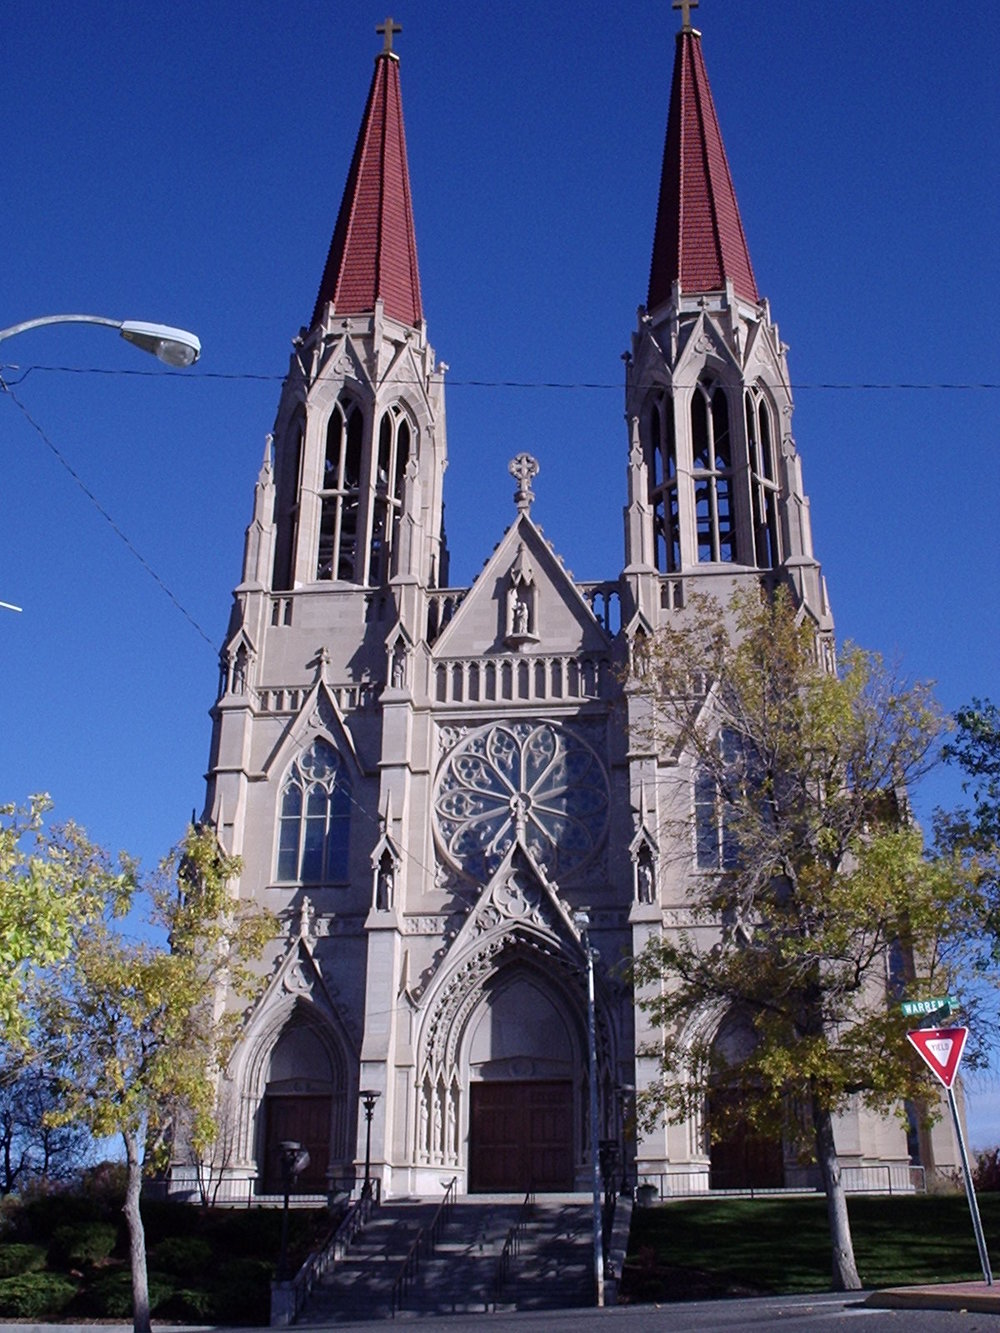 The Saint Helena Cathedral, built in 1908. is an impressive sight as it overlooks the downtown. It is a beautiful and sacred place to explore.